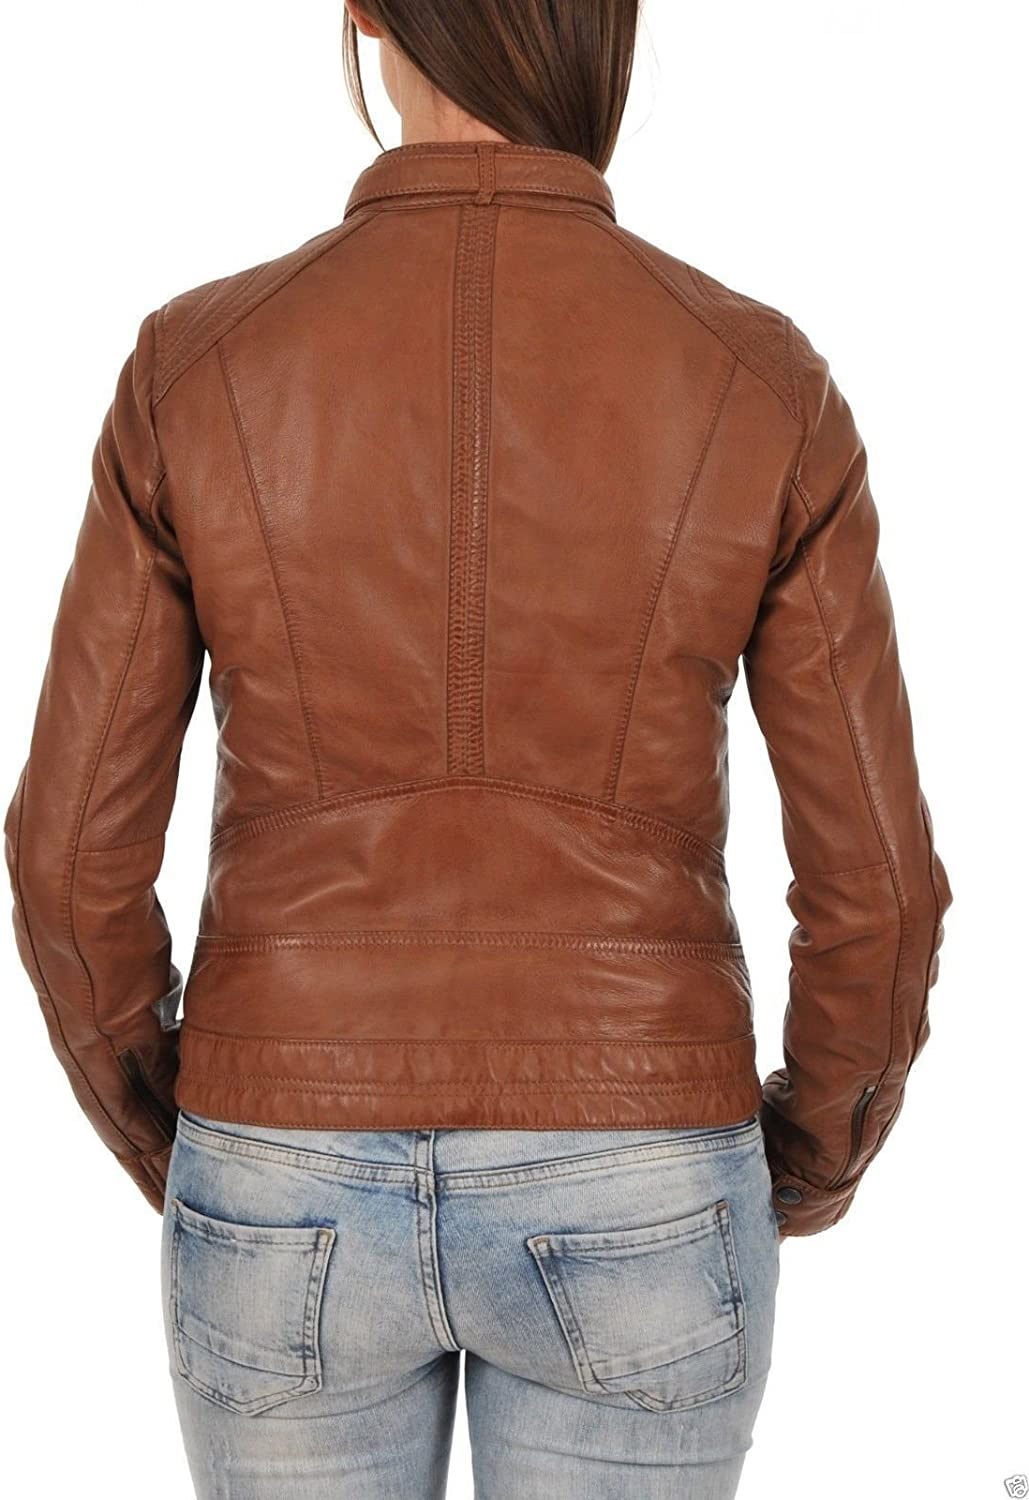 New Fashion Style Womens Leather Jackets Motorcycle Bomber Biker Dark Brown Real Leather Jacket Women